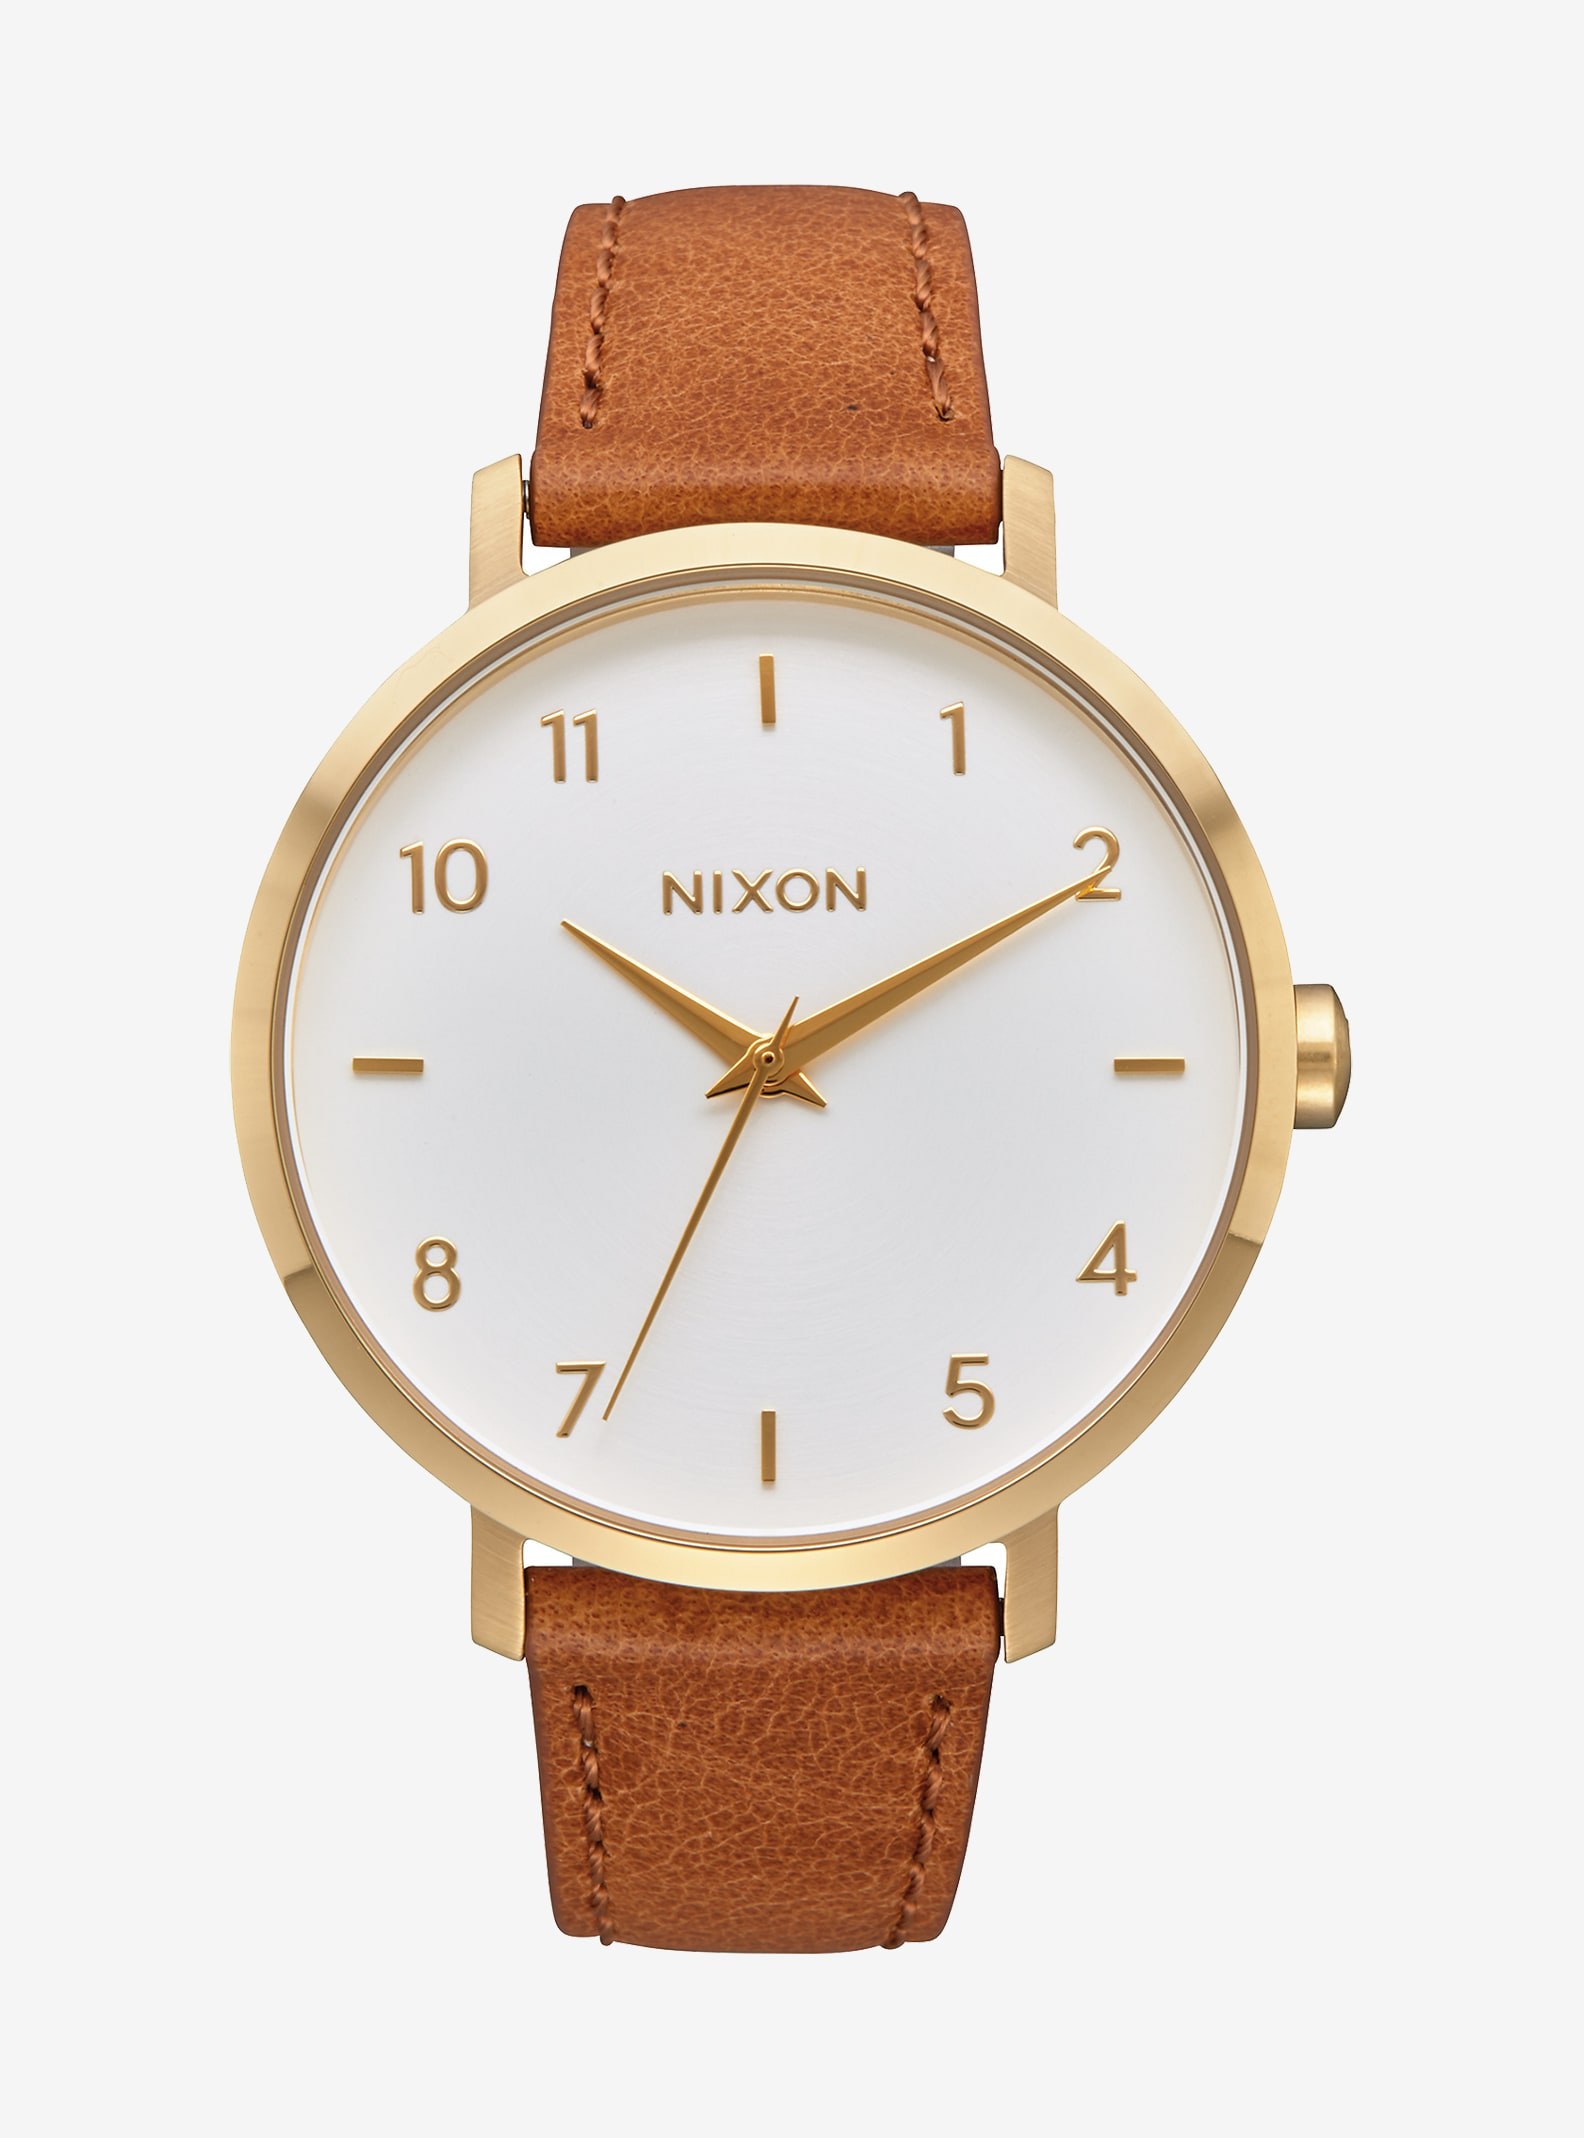 Nixon Arrow Leather Watch shown in Gold / White / Saddle